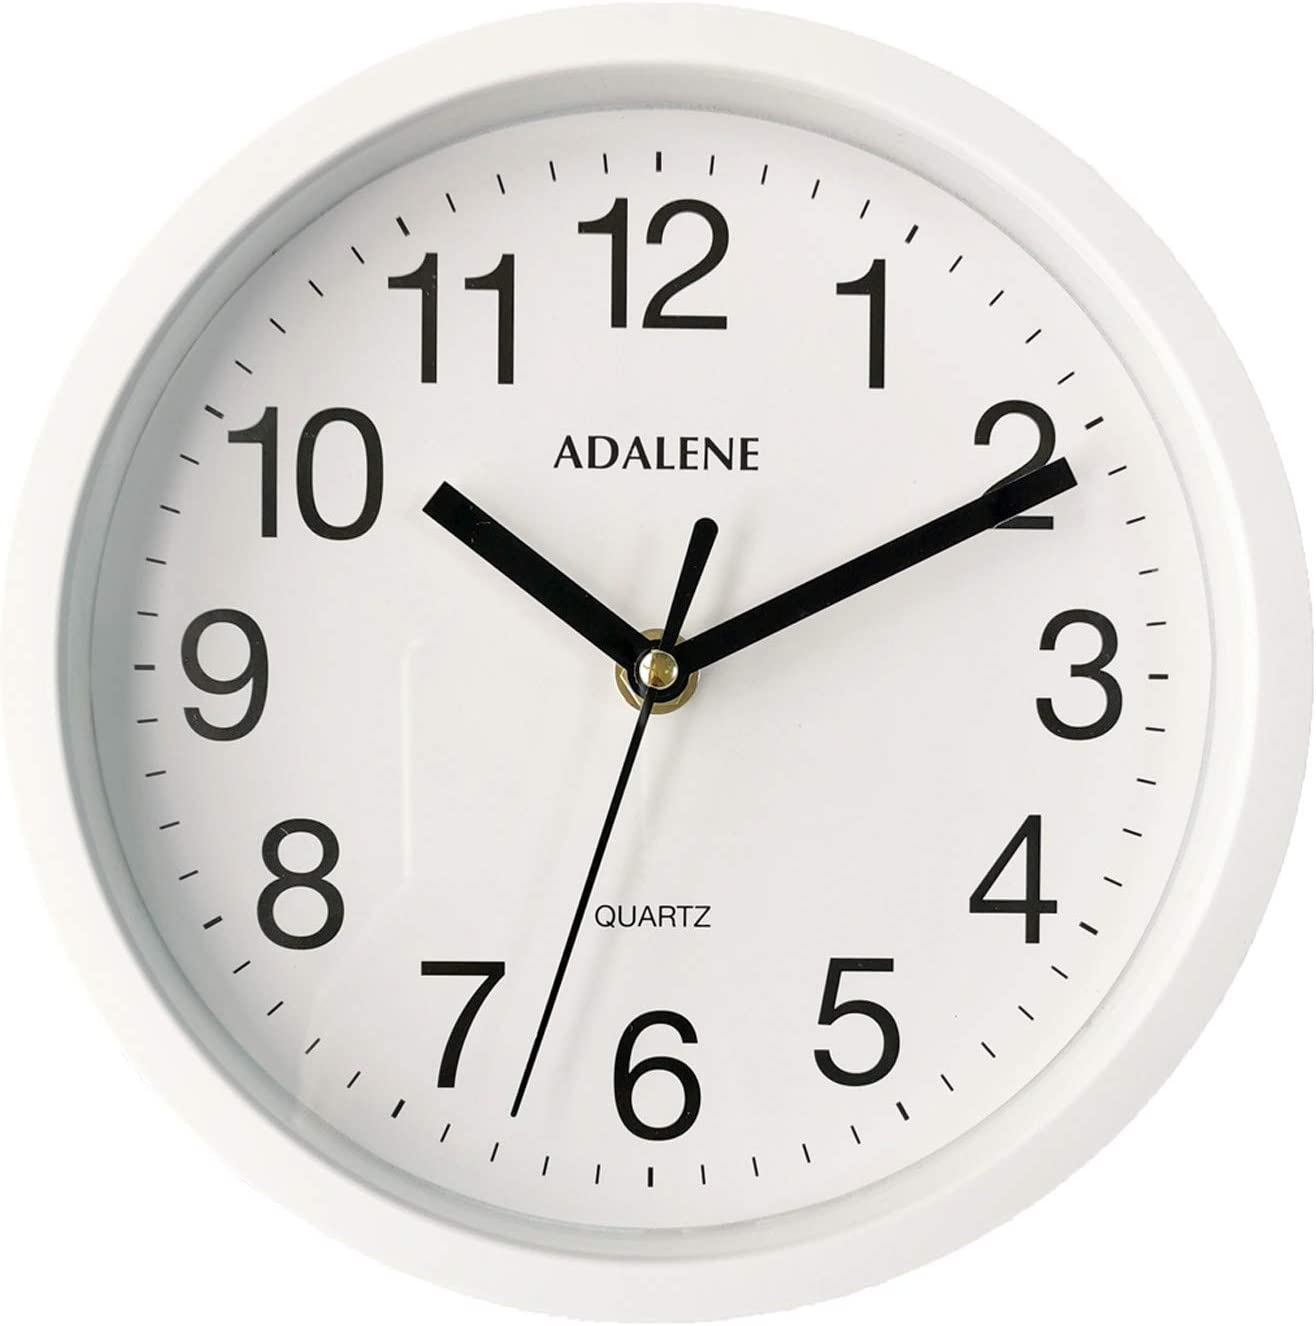 Battery Operated Quartz Analog Quiet Wall Clock Bedroom Adalene 13 Inch Large Non Ticking Silent Wall Clock Decorative for Living Room Kitchen